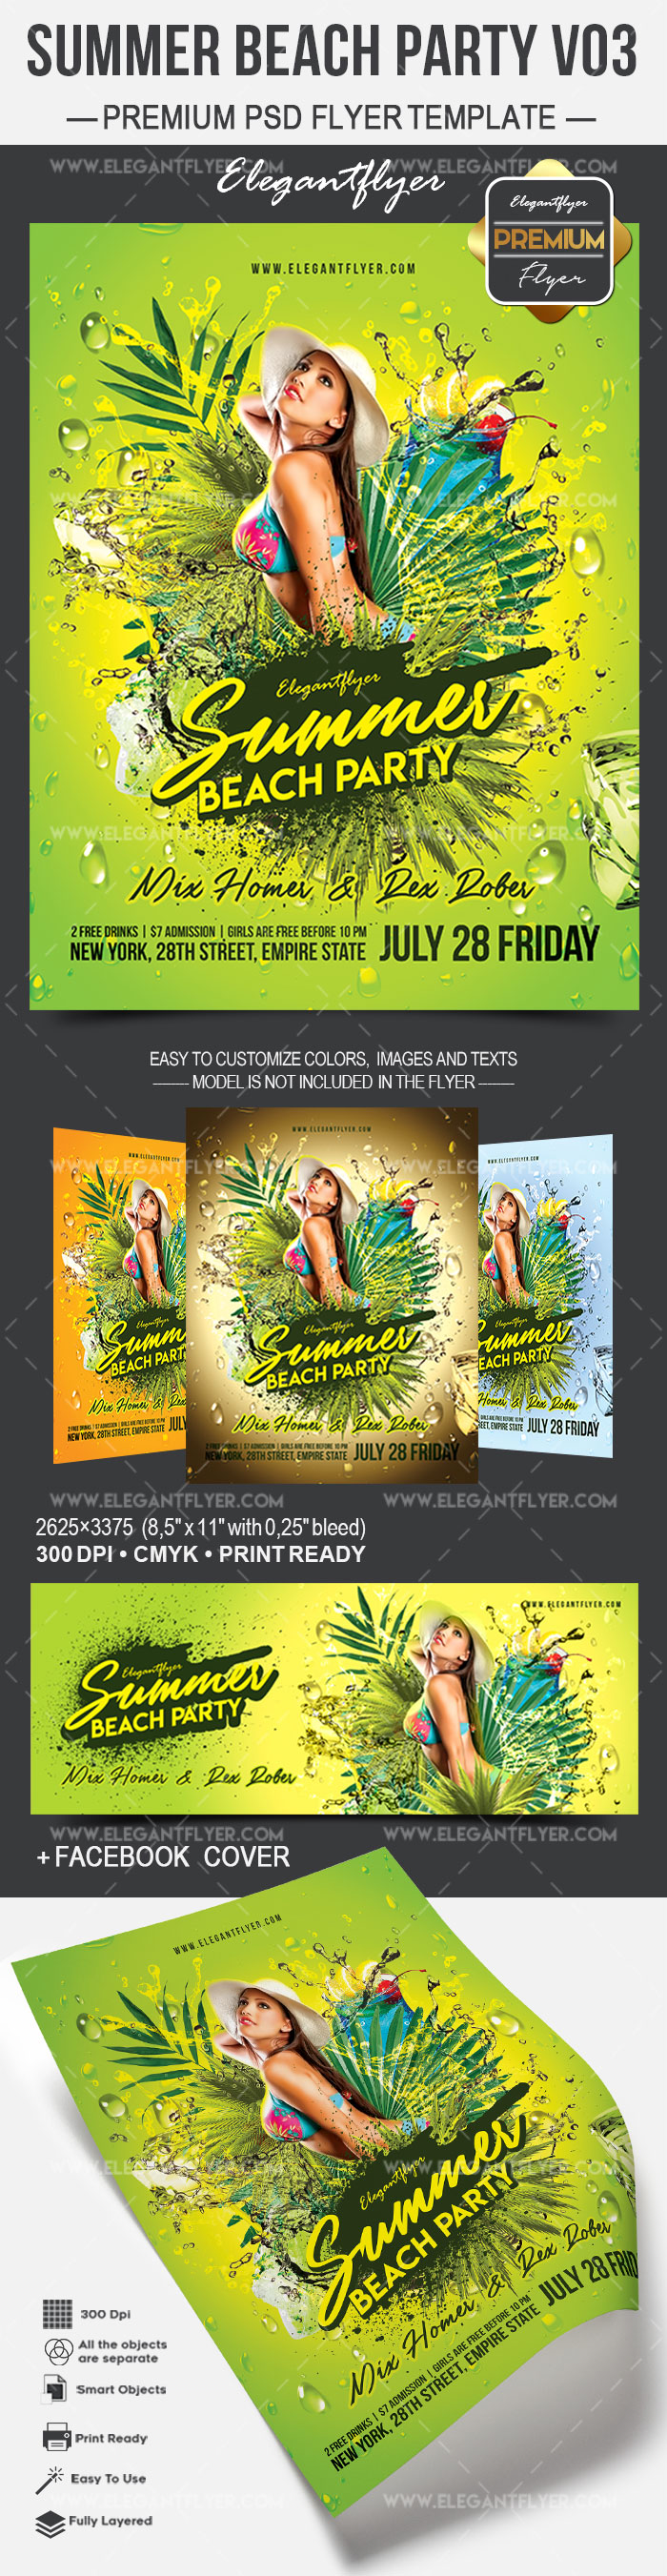 Summer Beach Party V03 – Flyer PSD Template + Facebook Cover